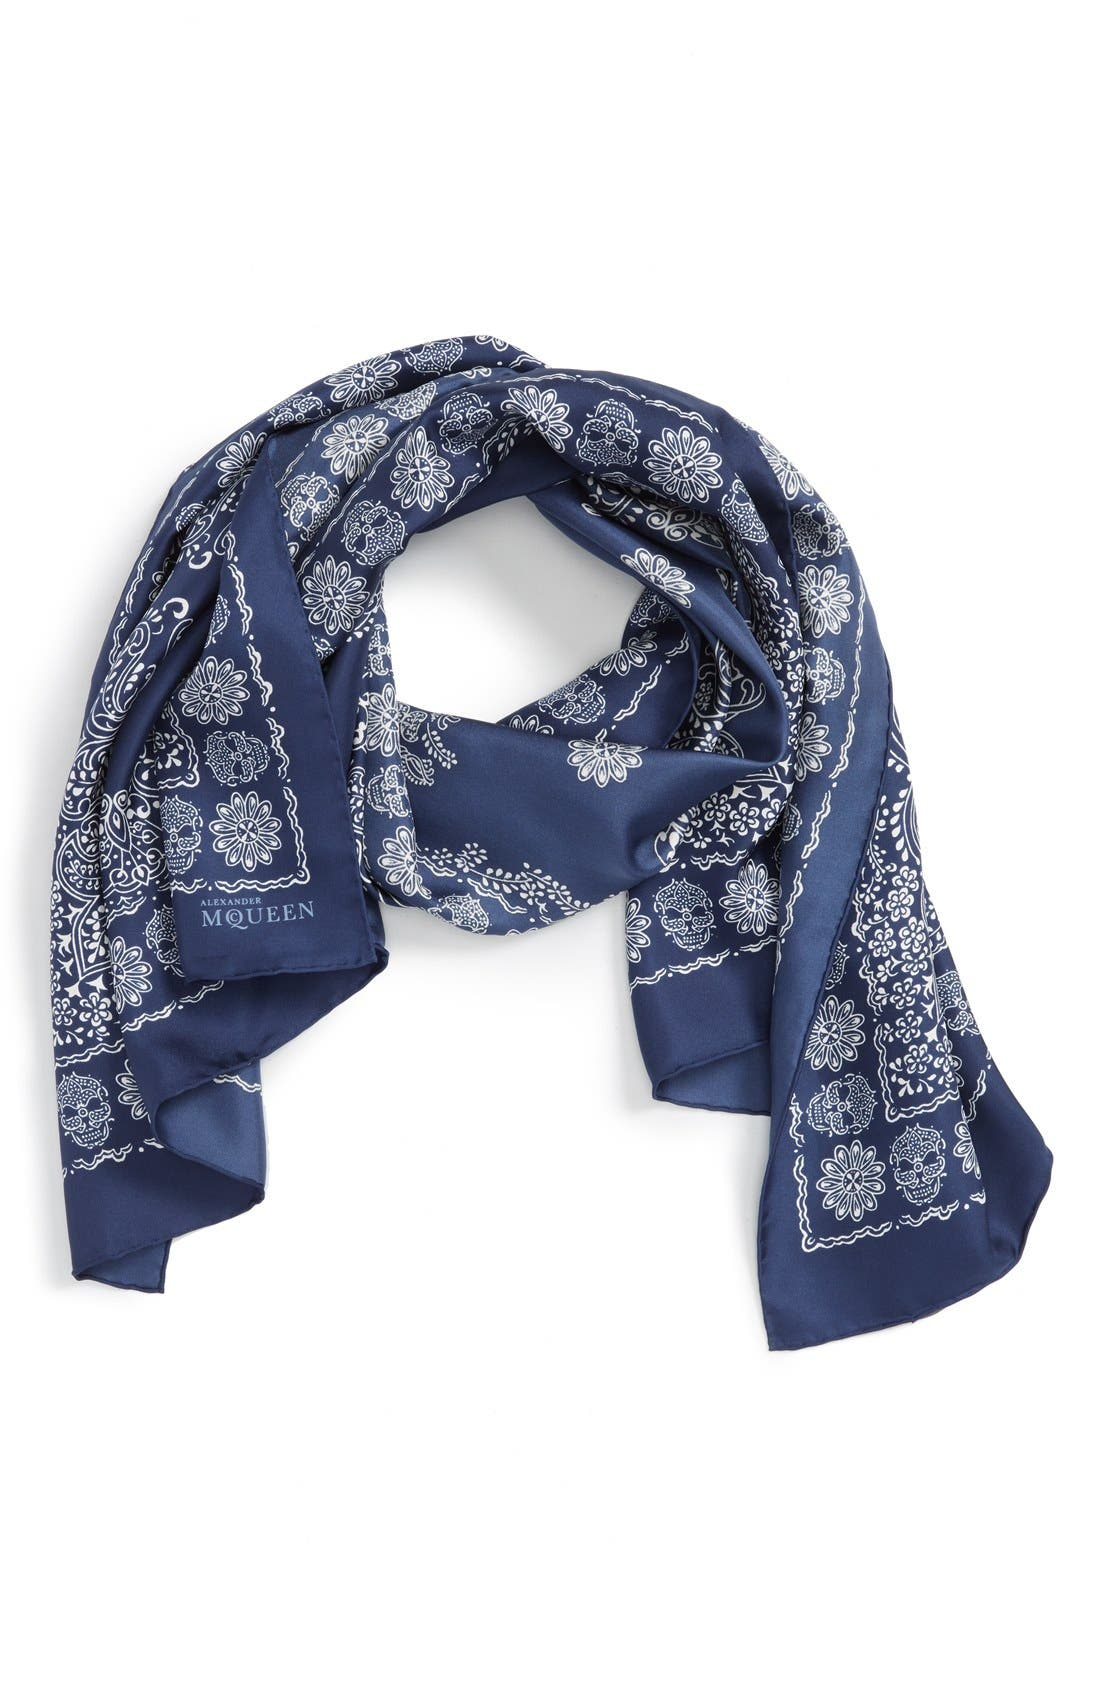 Alternate Image 1 Selected - Alexander McQueen Oblong Scarf